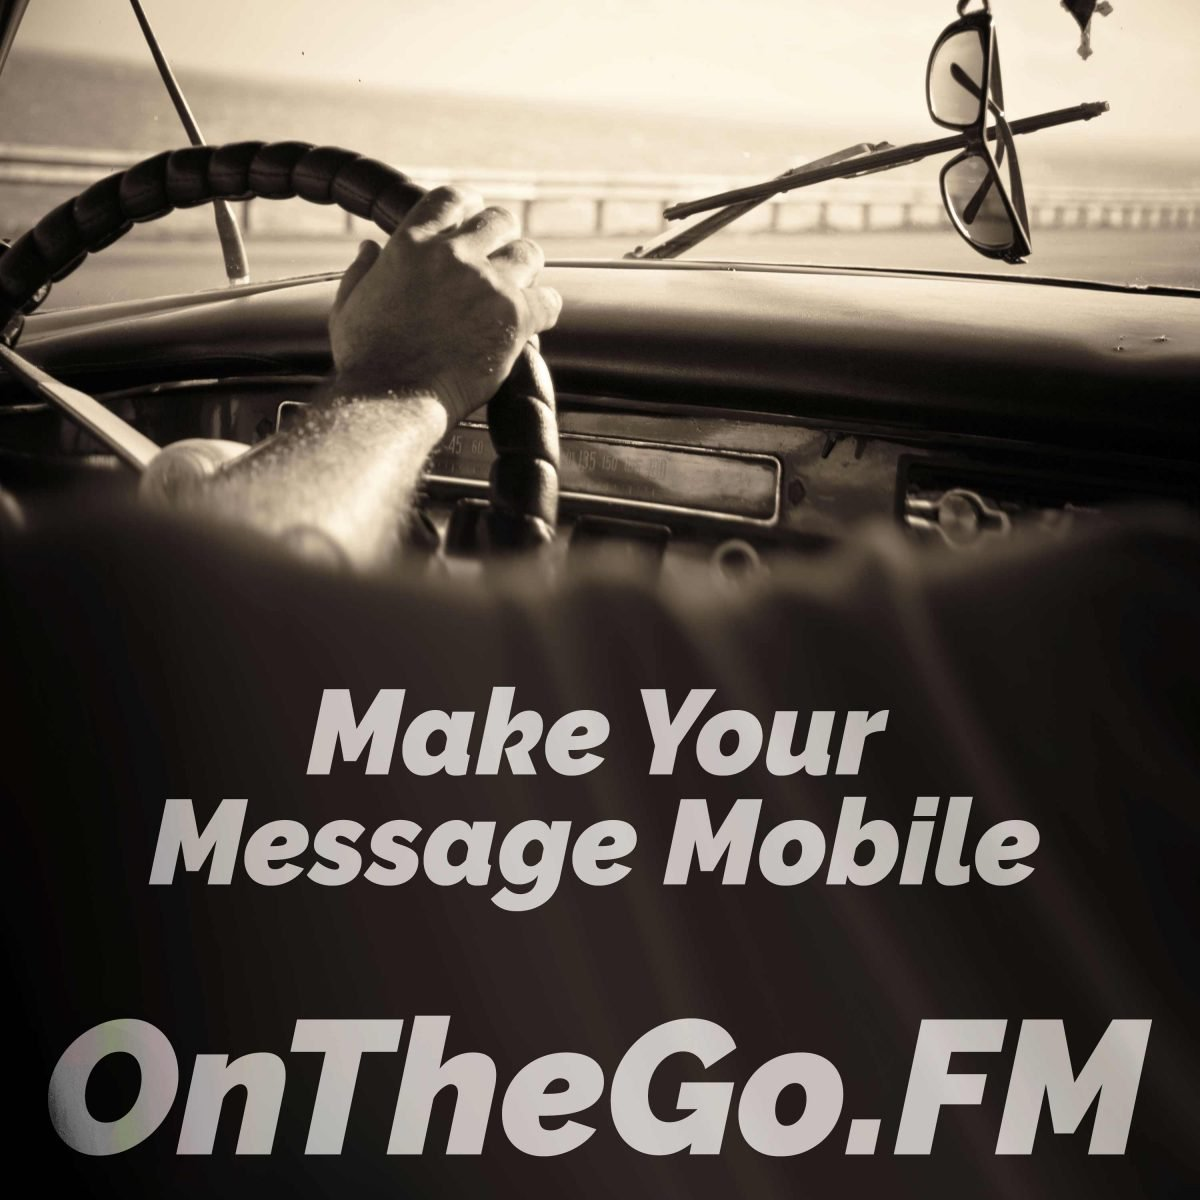 on-the-go-fm-make-your-message-mobile-3000